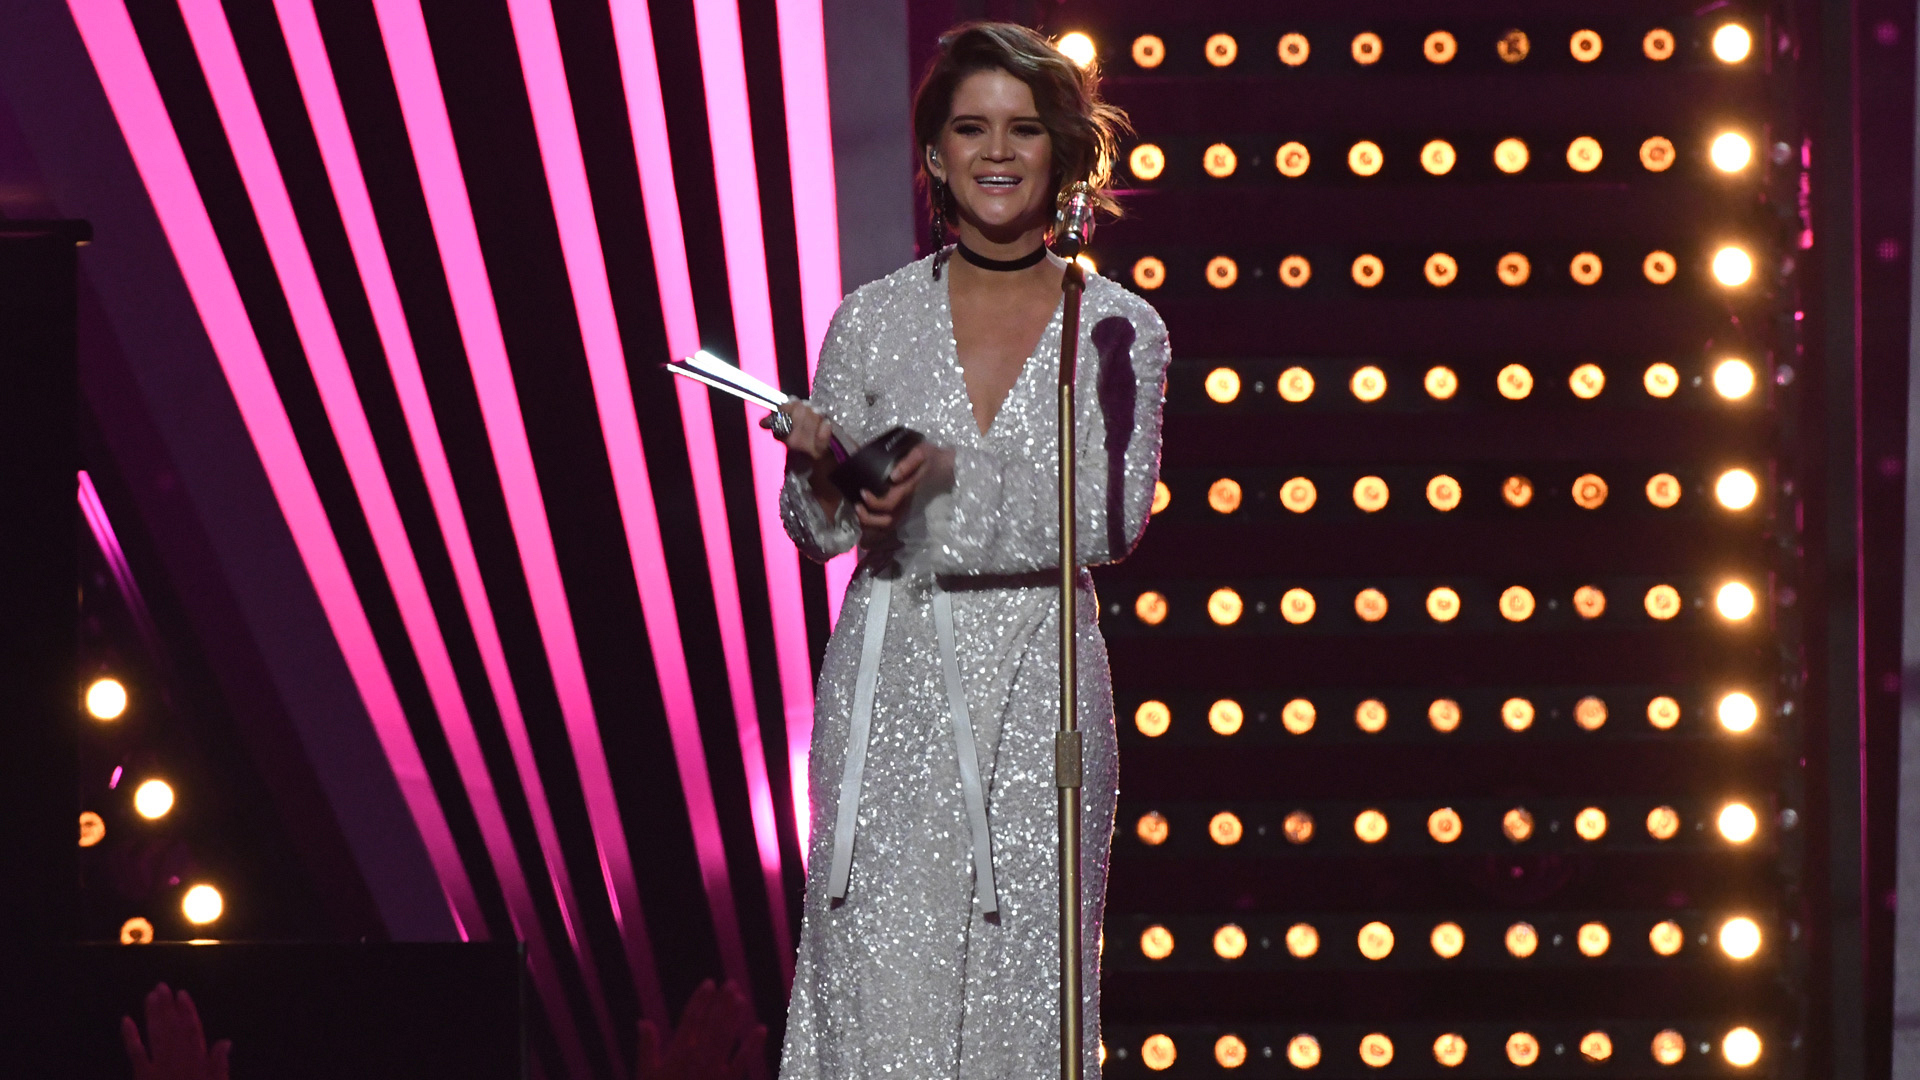 Maren Morris wins New Female Vocalist Of The Year presented by T-Mobile at the 52nd ACM Awards